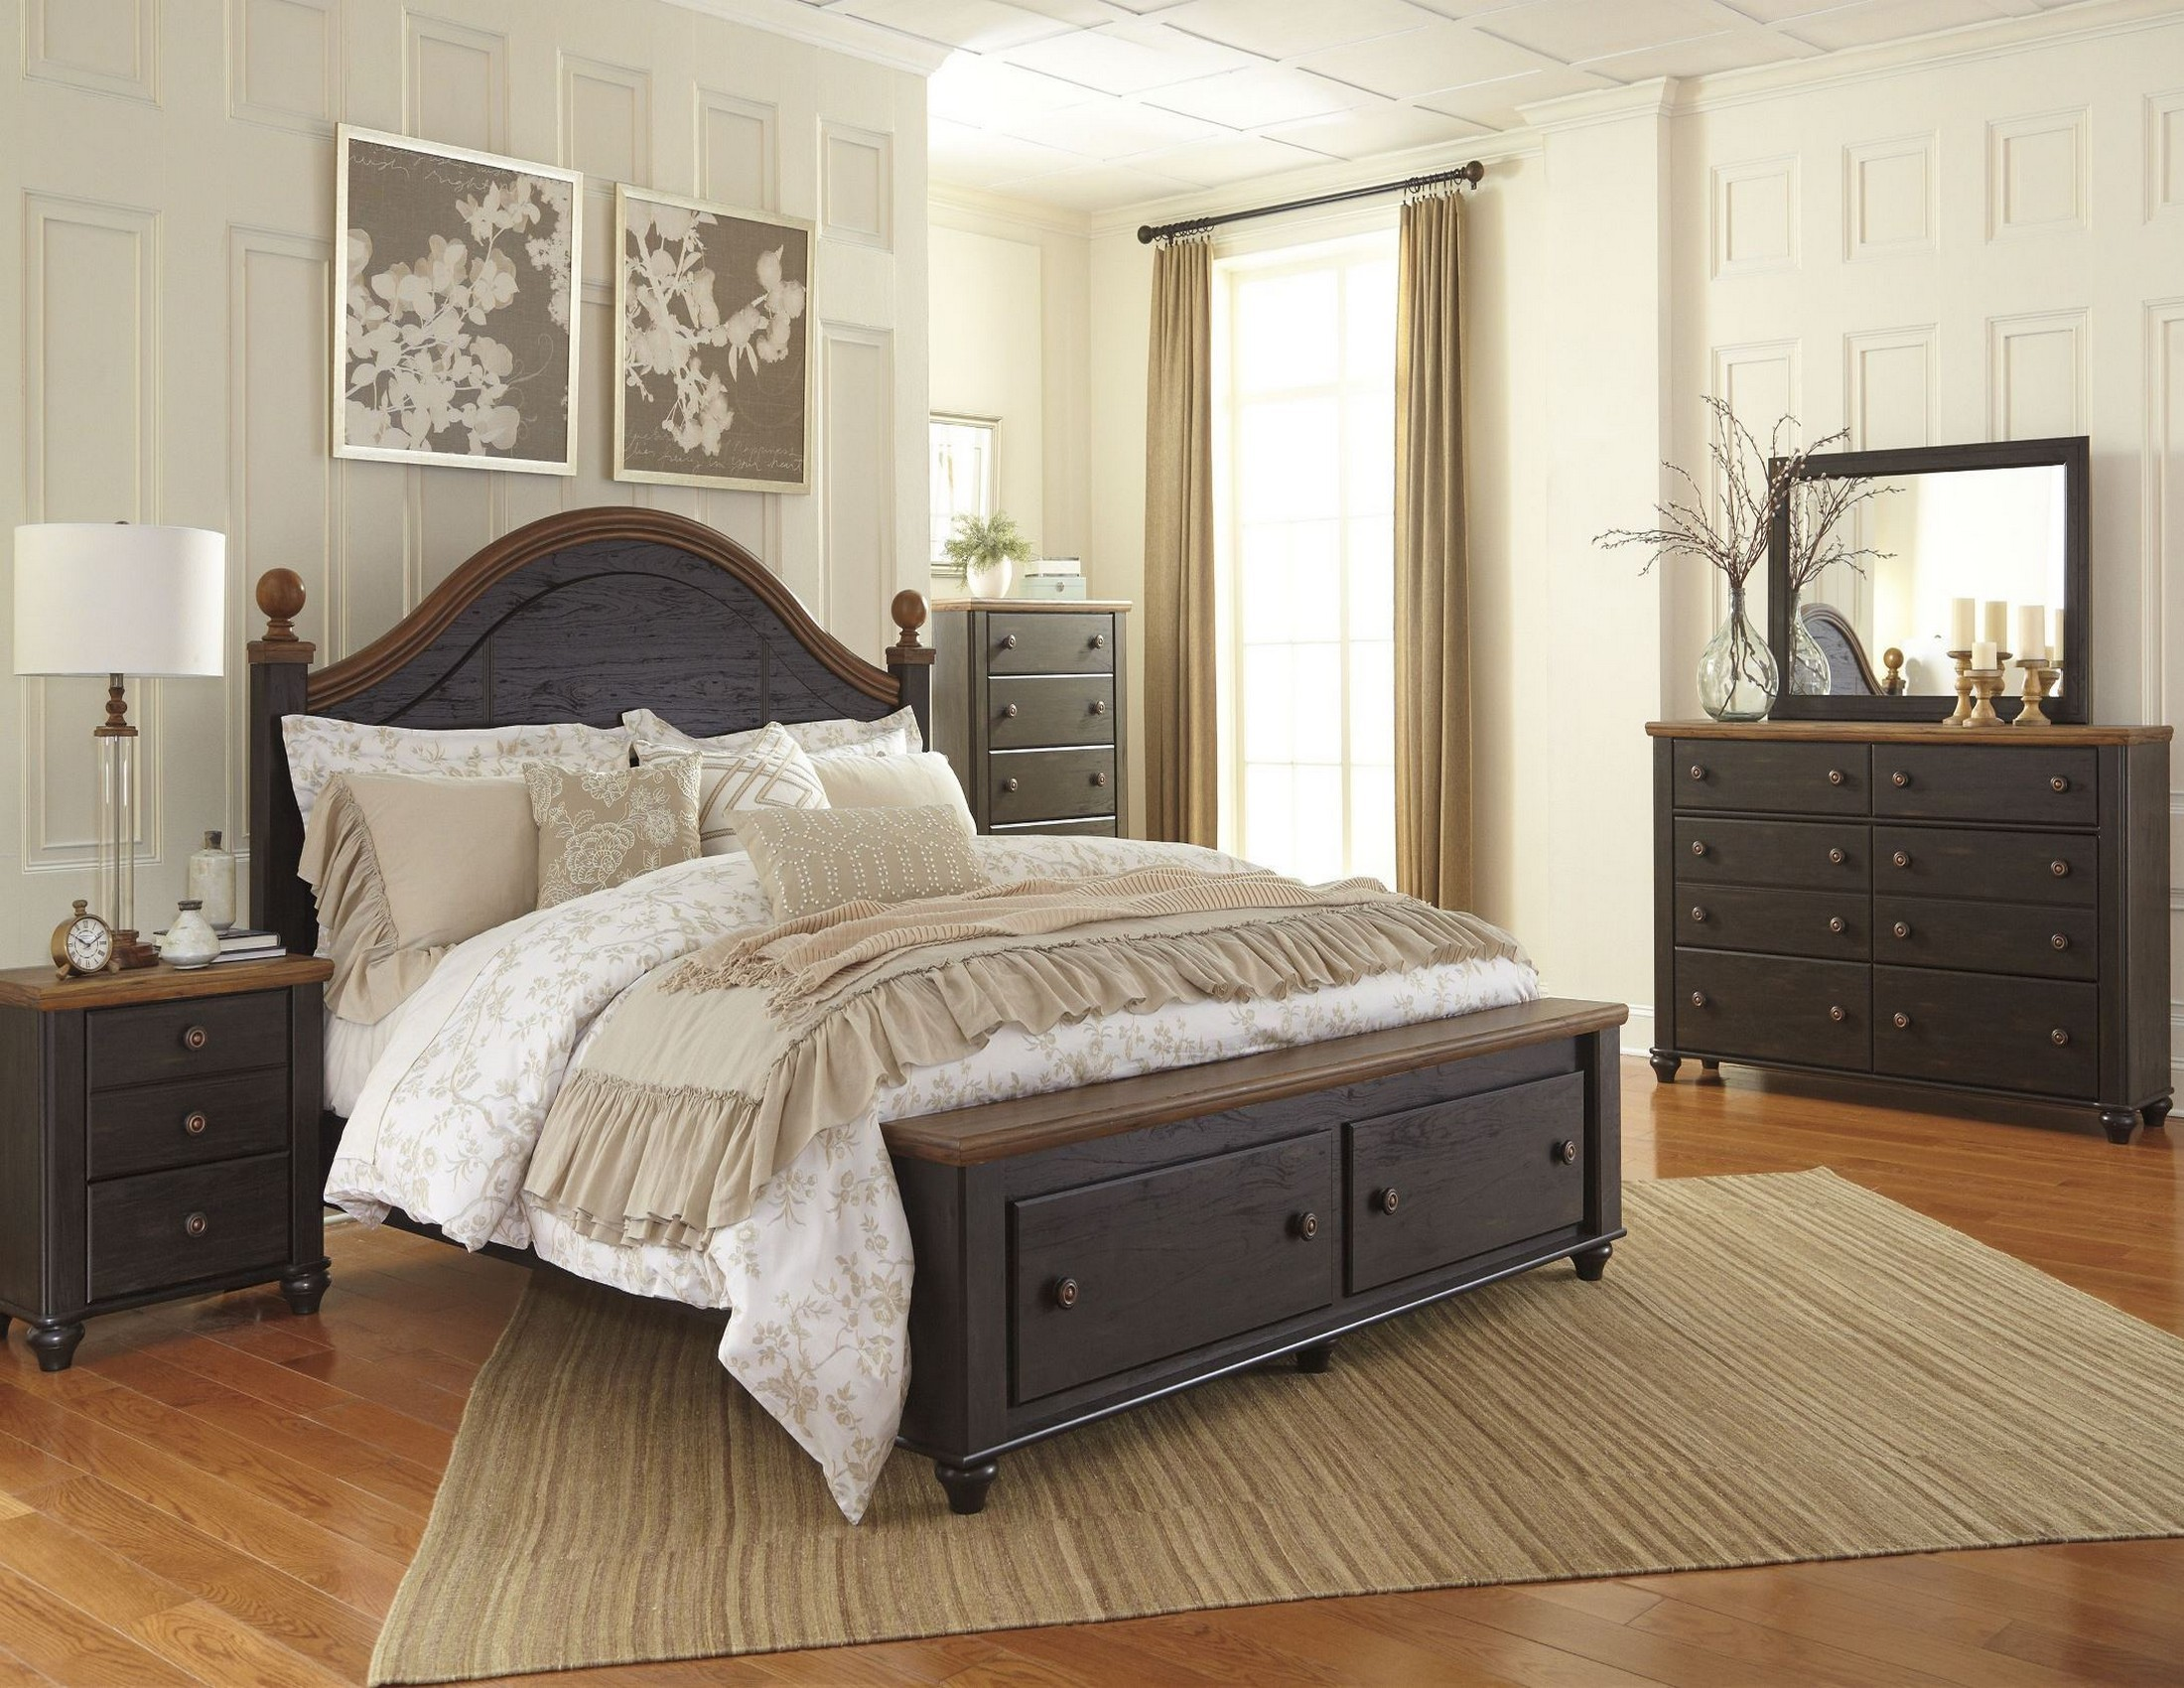 Maxington black and reddish brown panel storage bedroom set from ashley b220 67 64s 95 for Black brown bedroom furniture